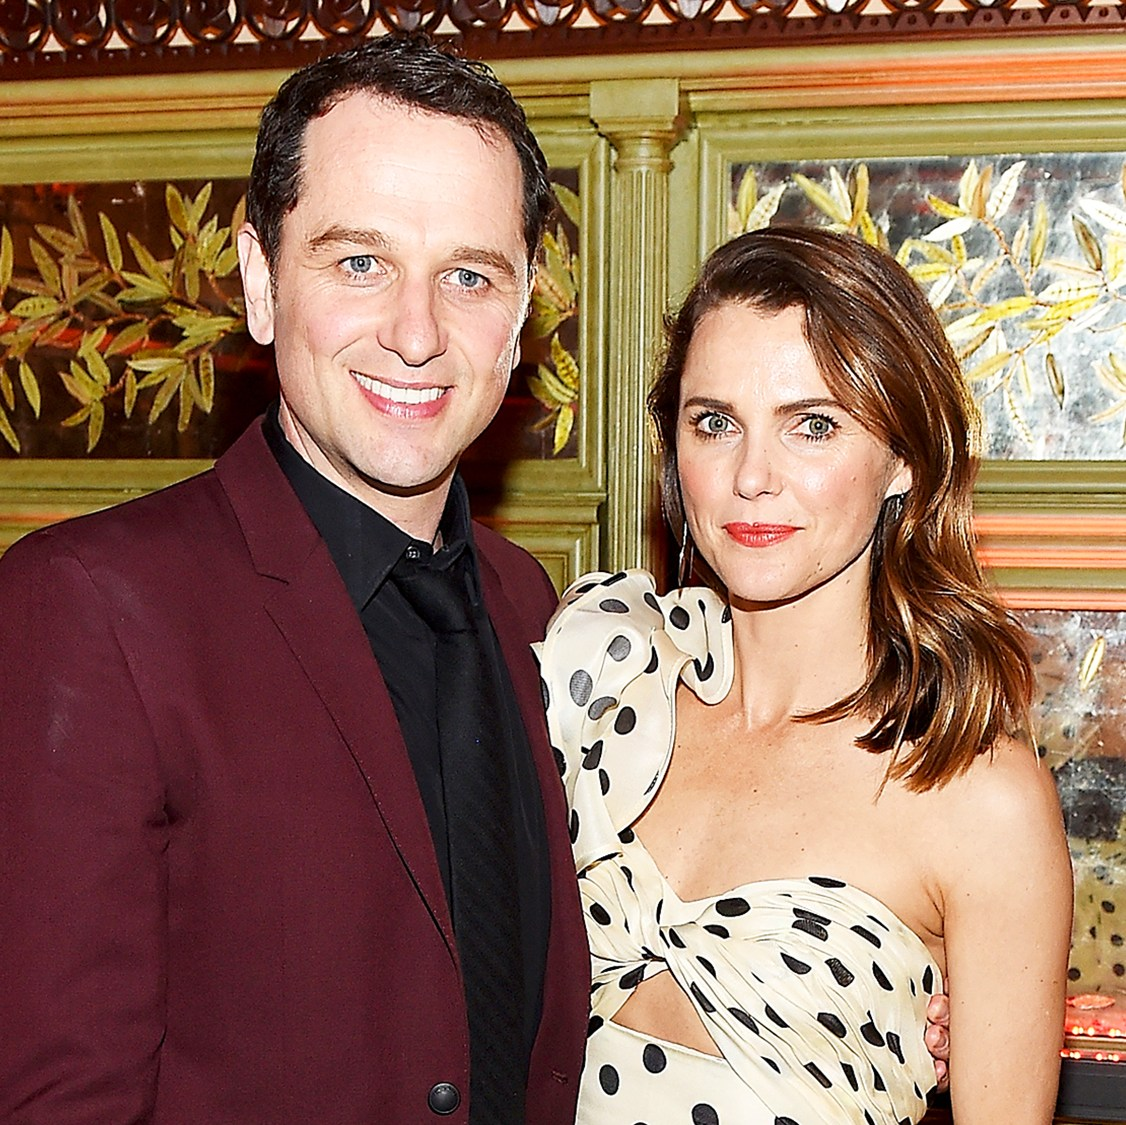 Matthew Rhys and Keri Russell attend 'The Americans' Season 6 Premiere After Party at Tavern On The Green on March 16, 2018 in New York City.